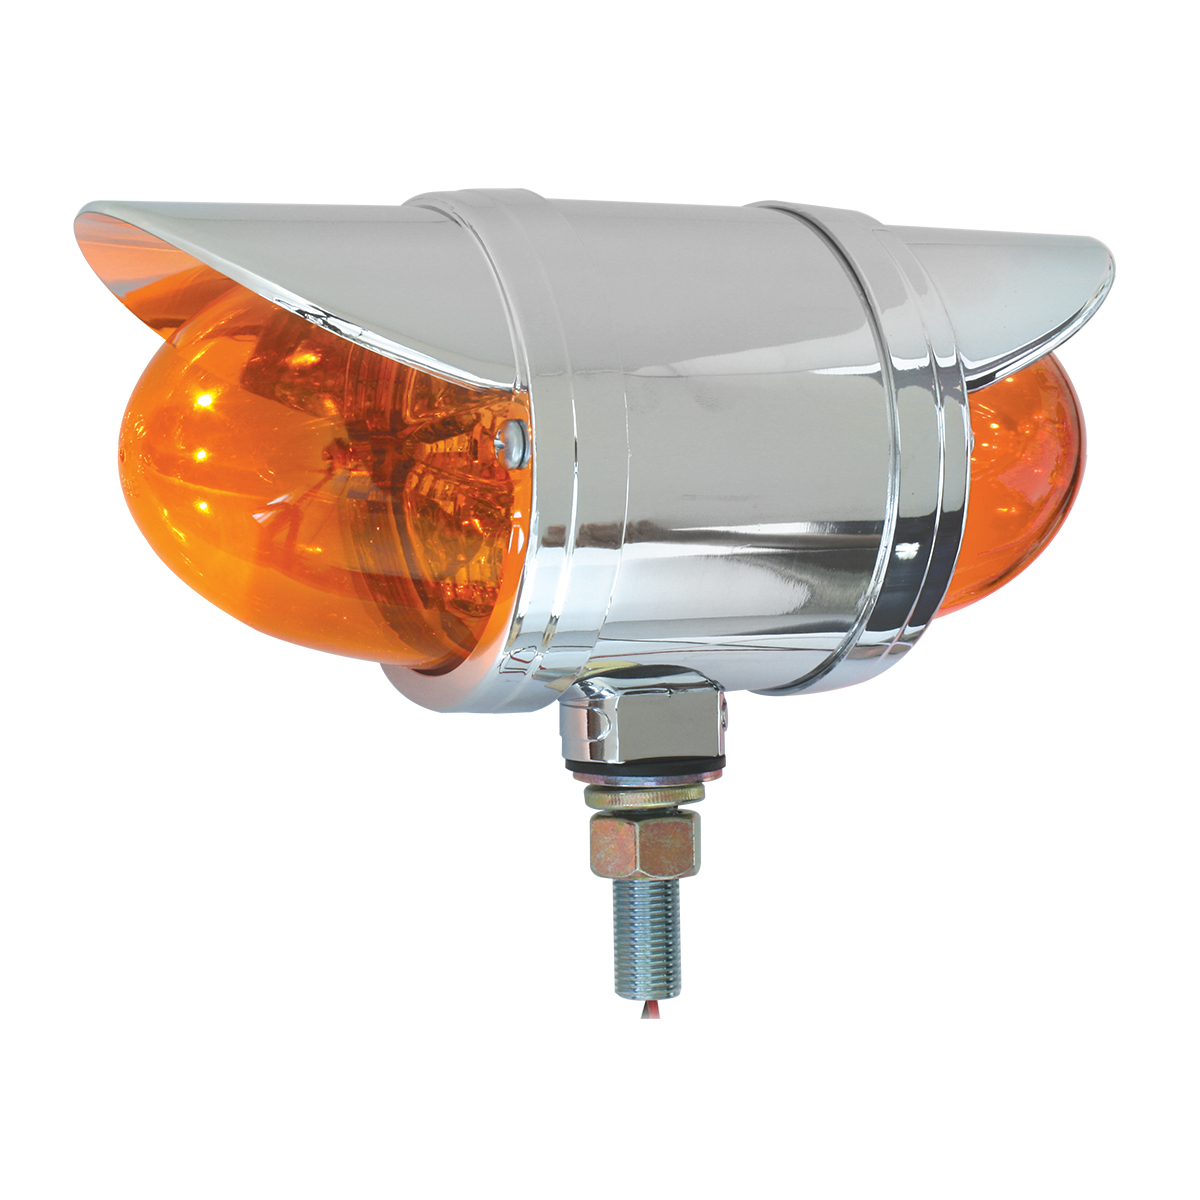 77932 Double Face Spyder LED Pedestal Light